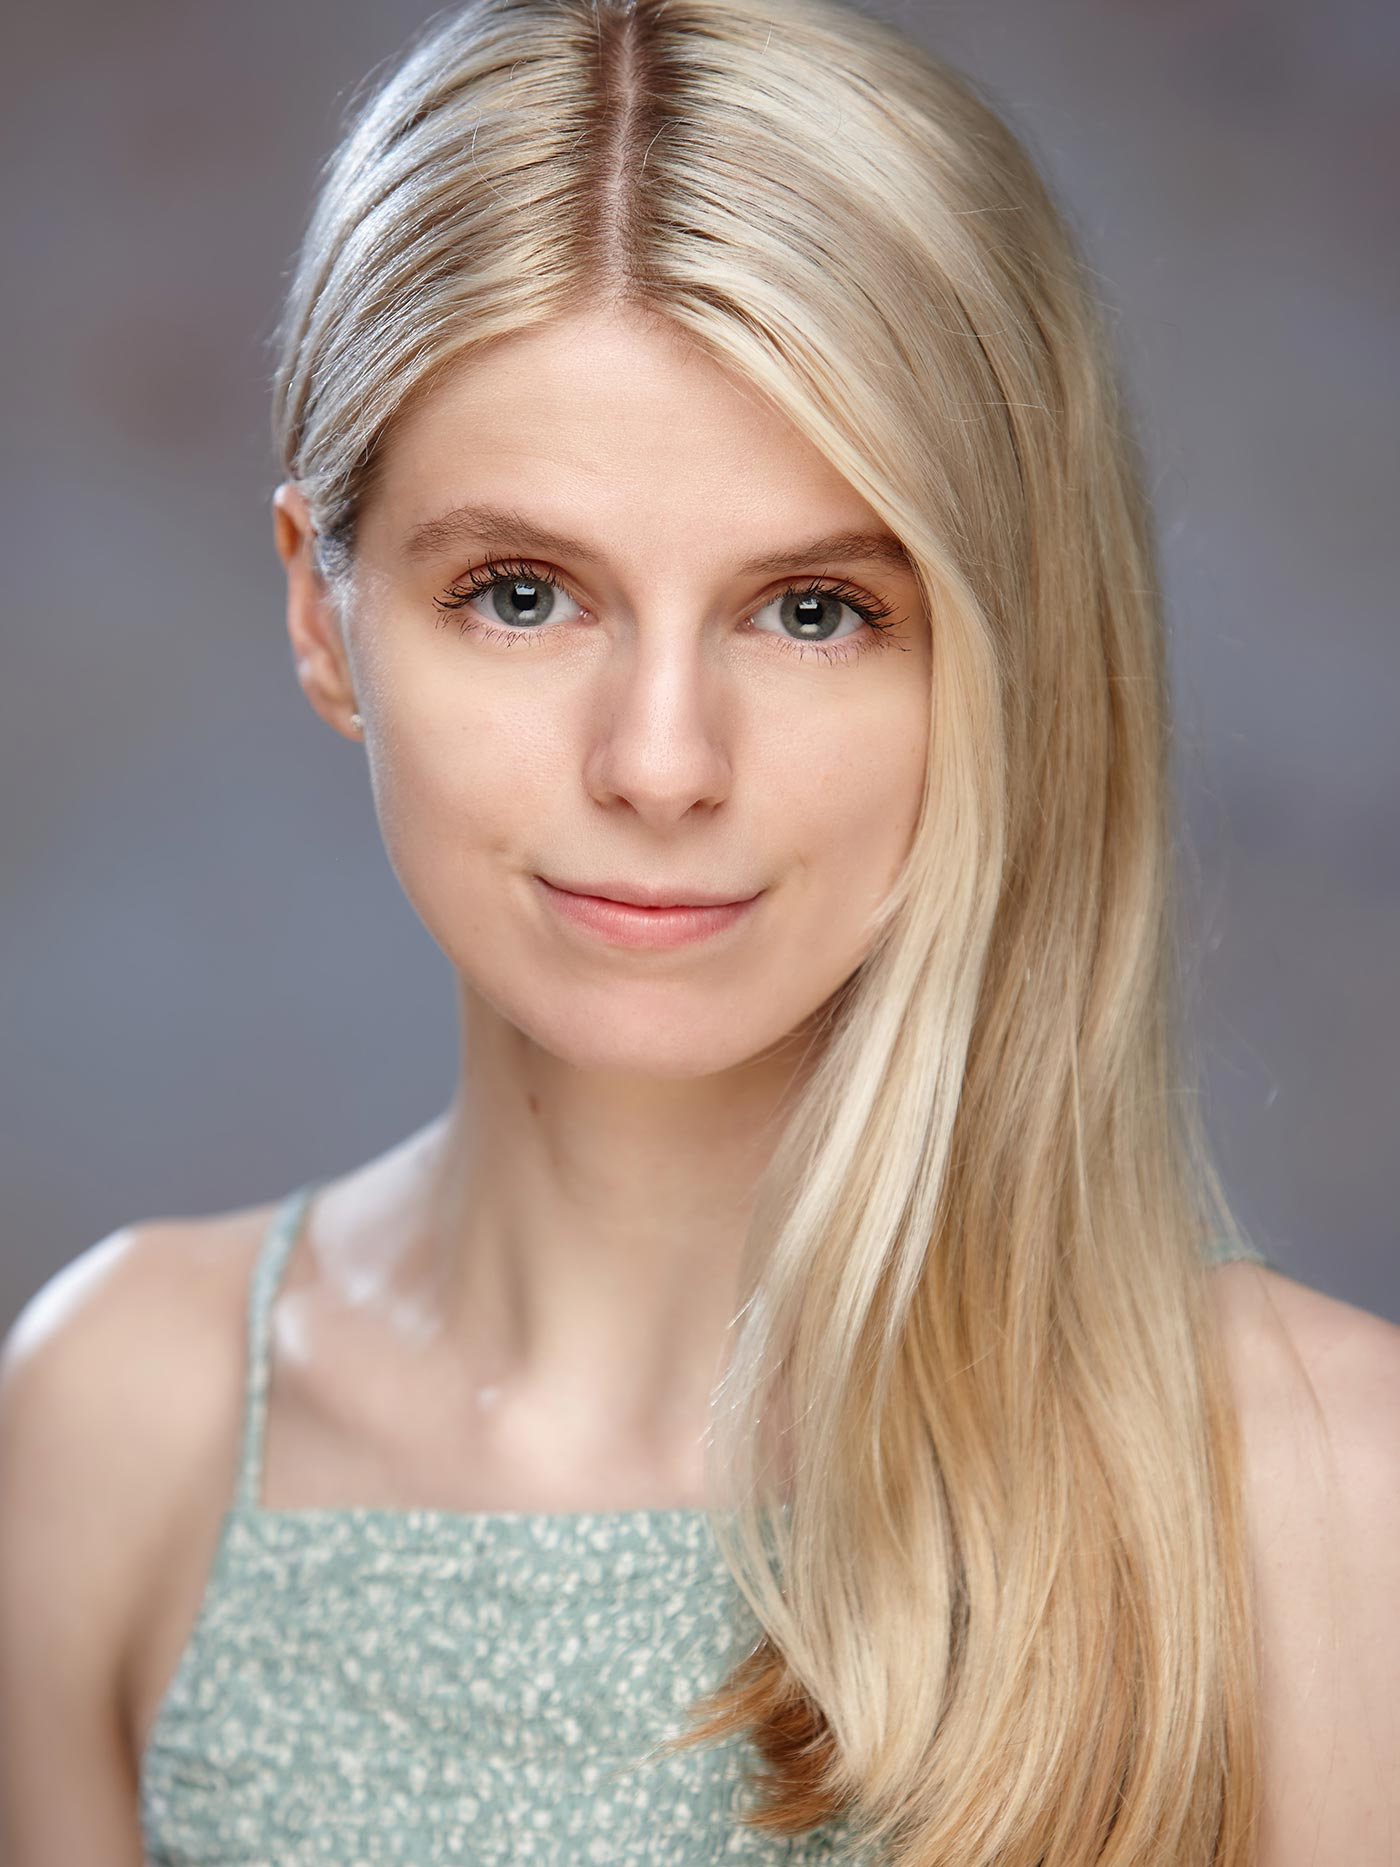 headshots for business, actors and social media